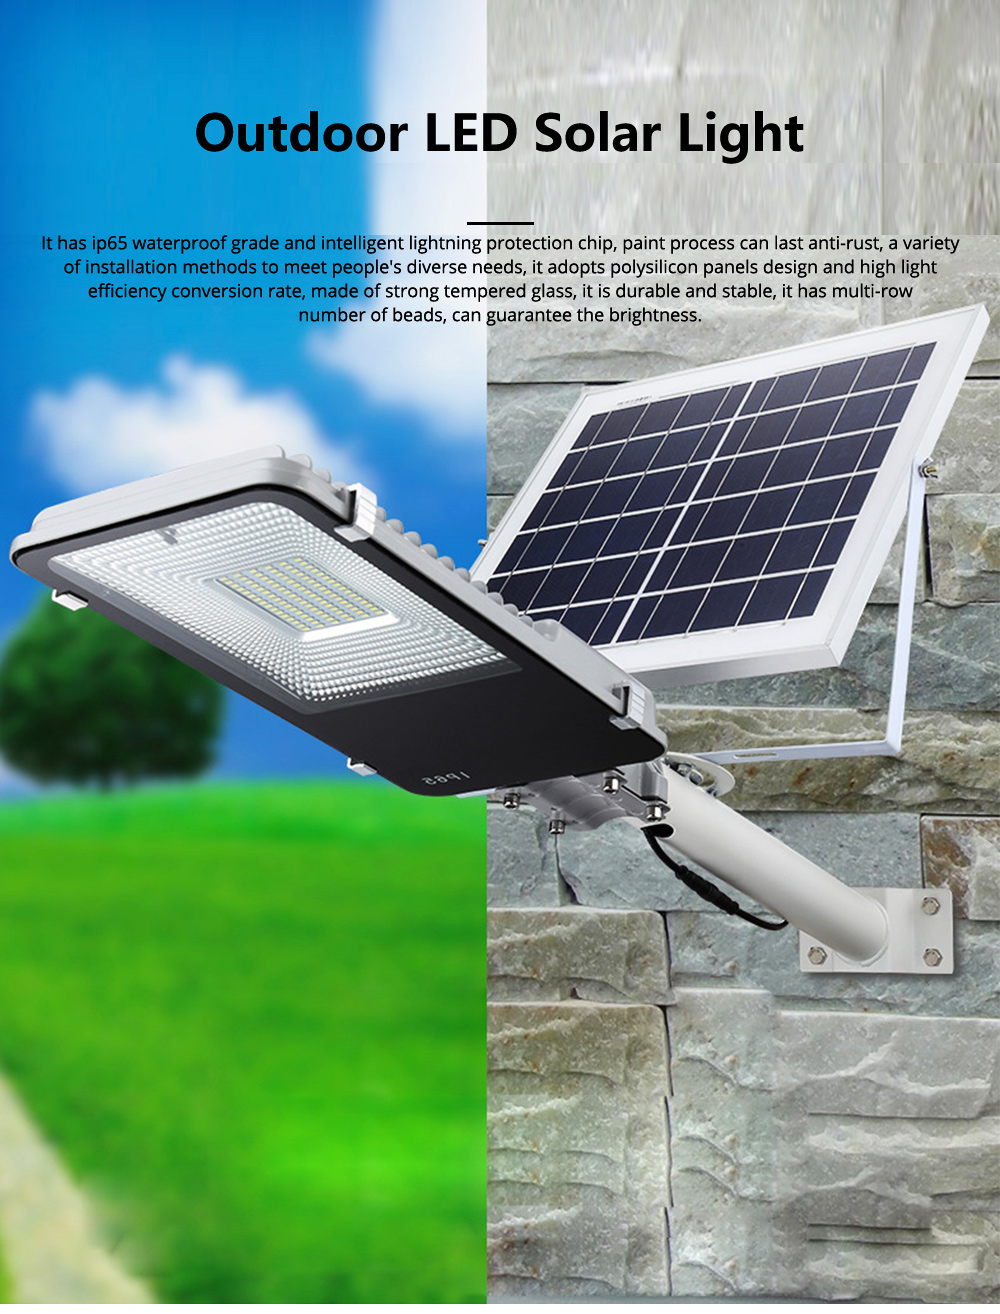 Outdoor LED Solar Light Toothbrush Street Light Solar Power Street Light Outdoor Lighting Garden 20W 30W 50W 0